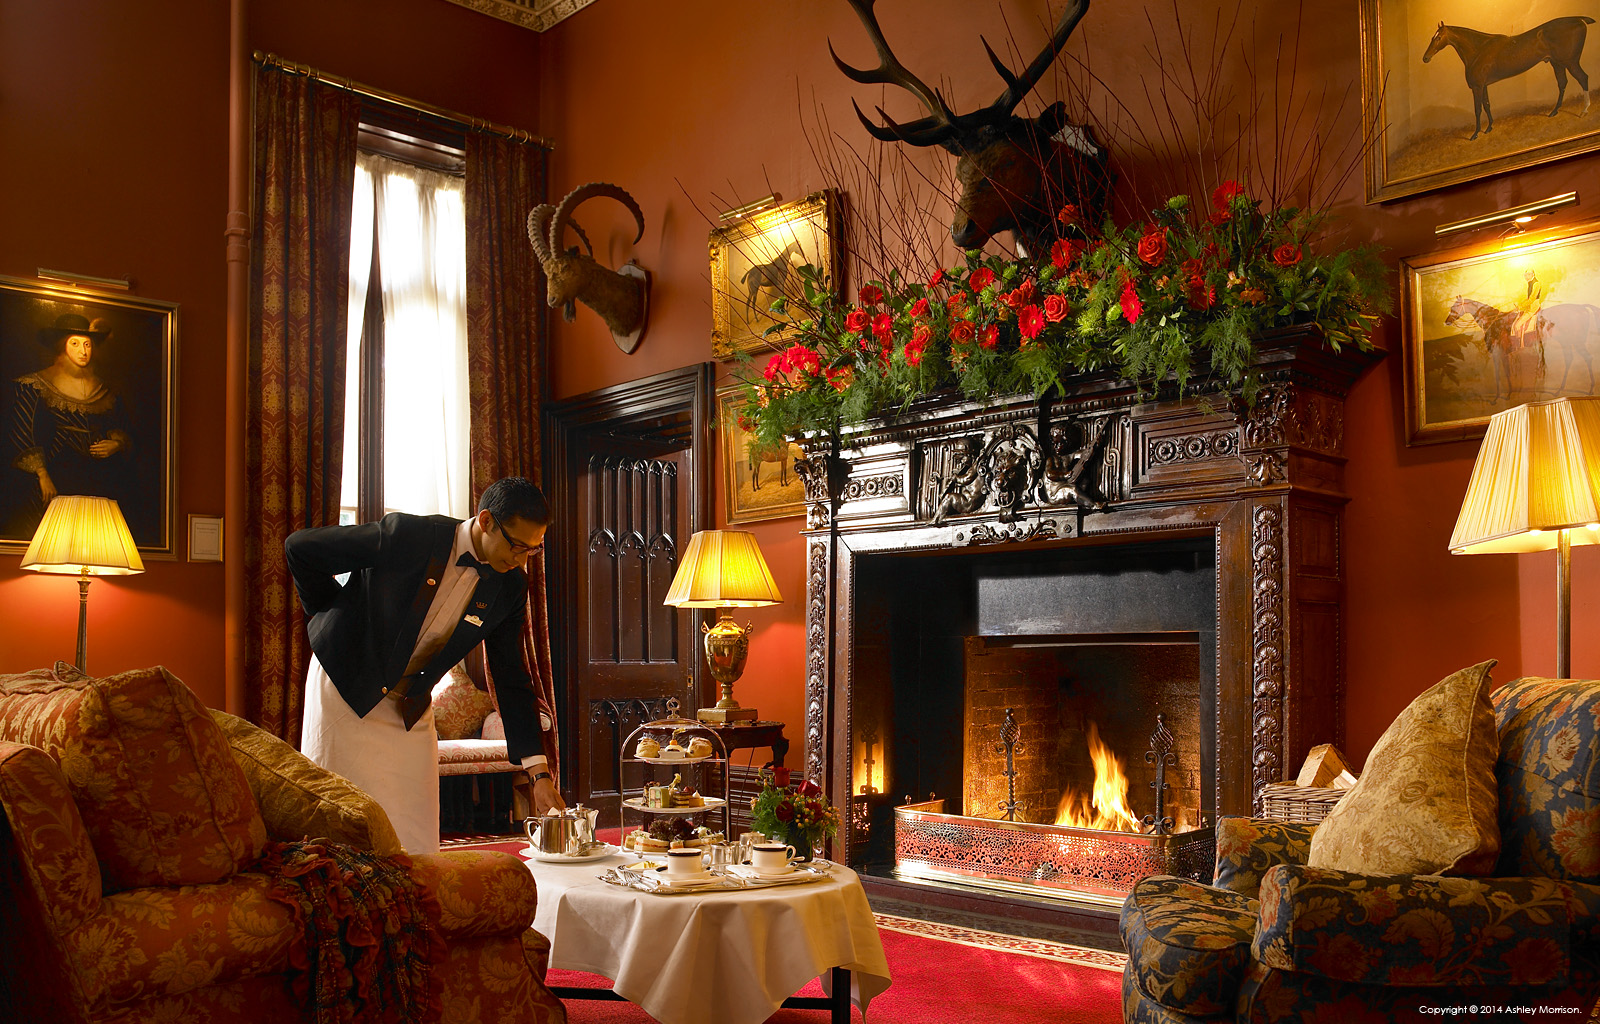 The fireplace in the lounge area at Dromoland Castle in County Clare.